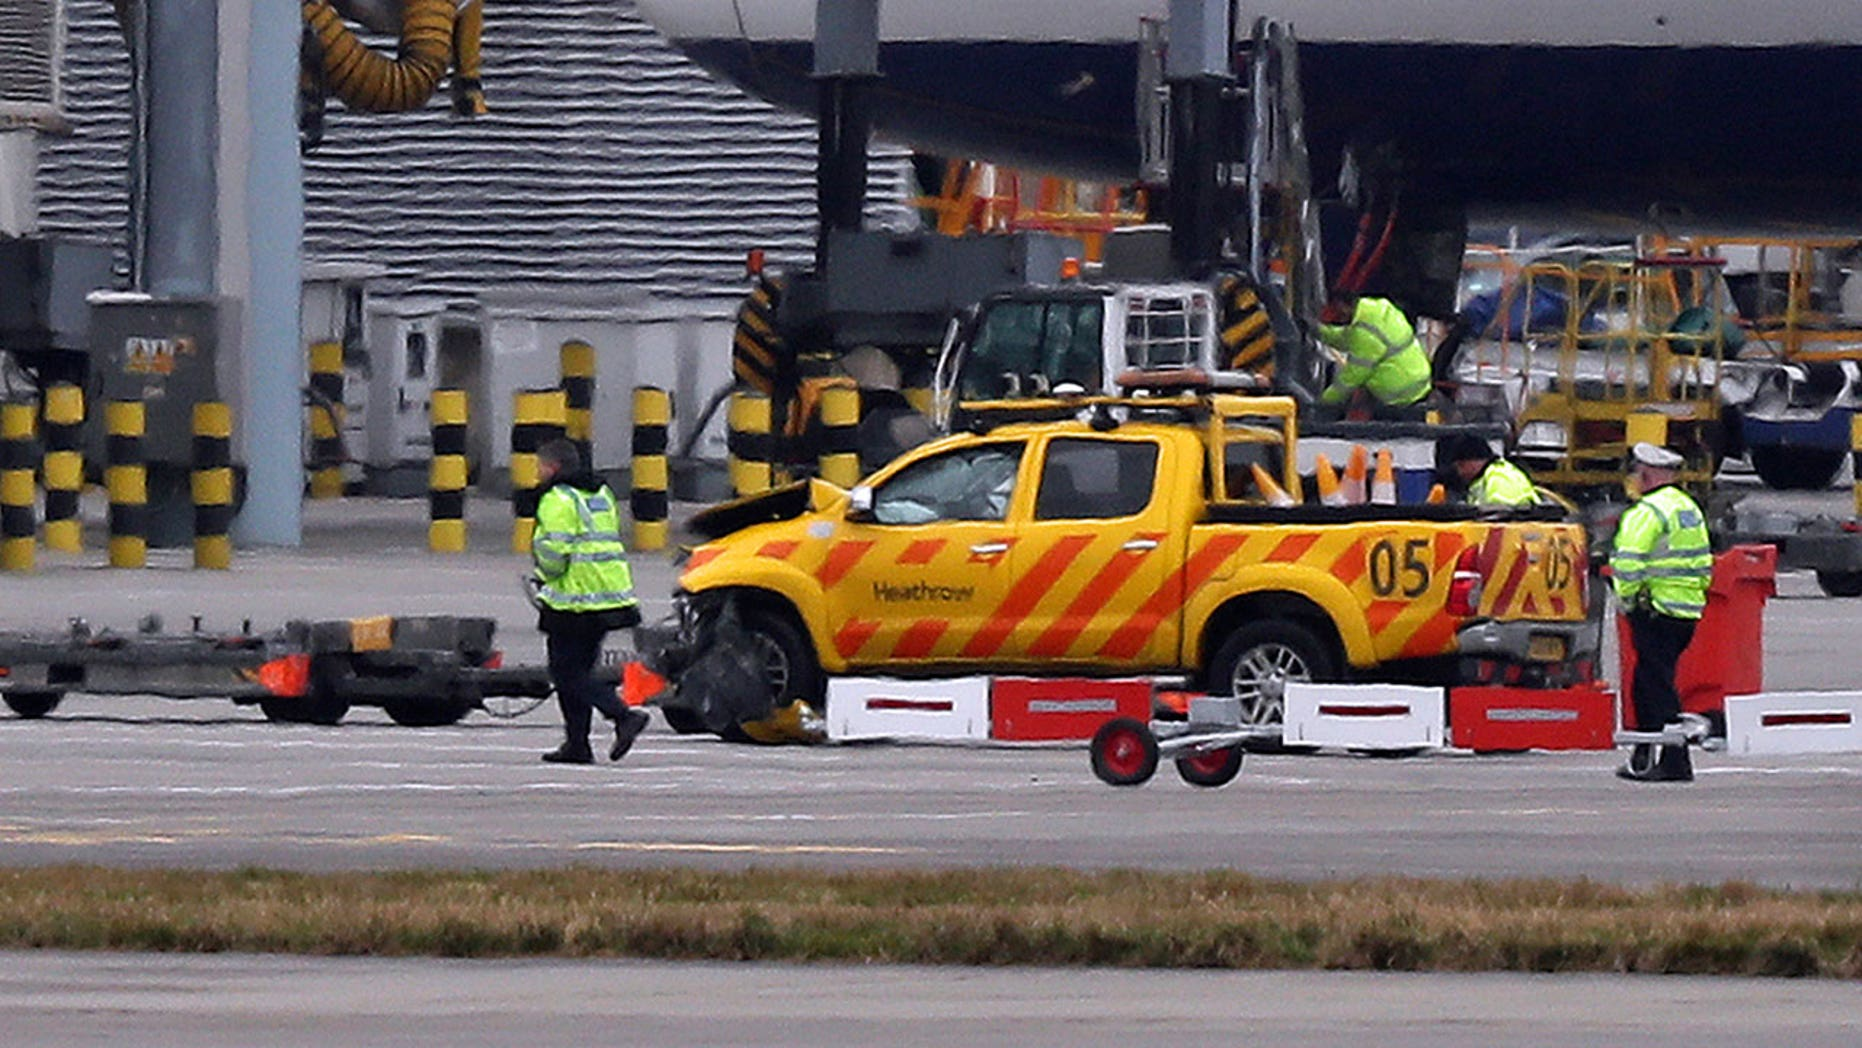 The two men were injured after the vehicles collided on the airfield, Heathrow confirmed. One suffered non-life-threatening injuries, the other died after being rushed to the hospital.